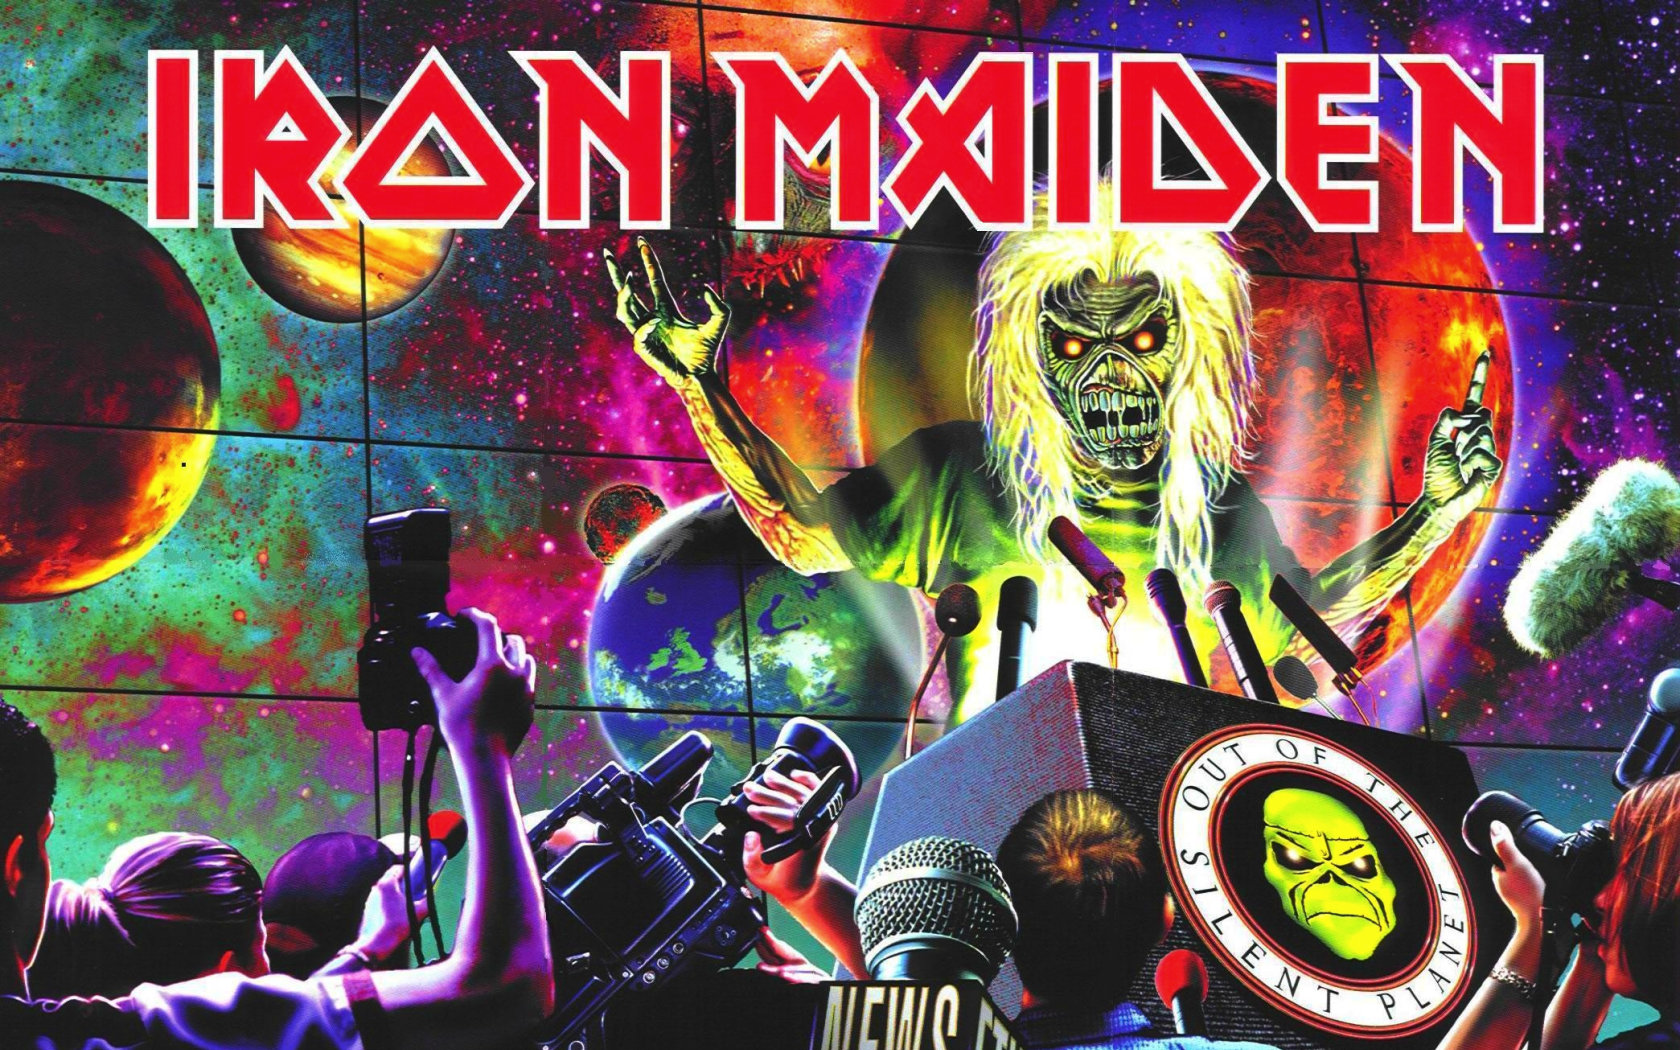 Awesome Iron Maiden free wallpaper ID:72613 for hd 1680x1050 PC